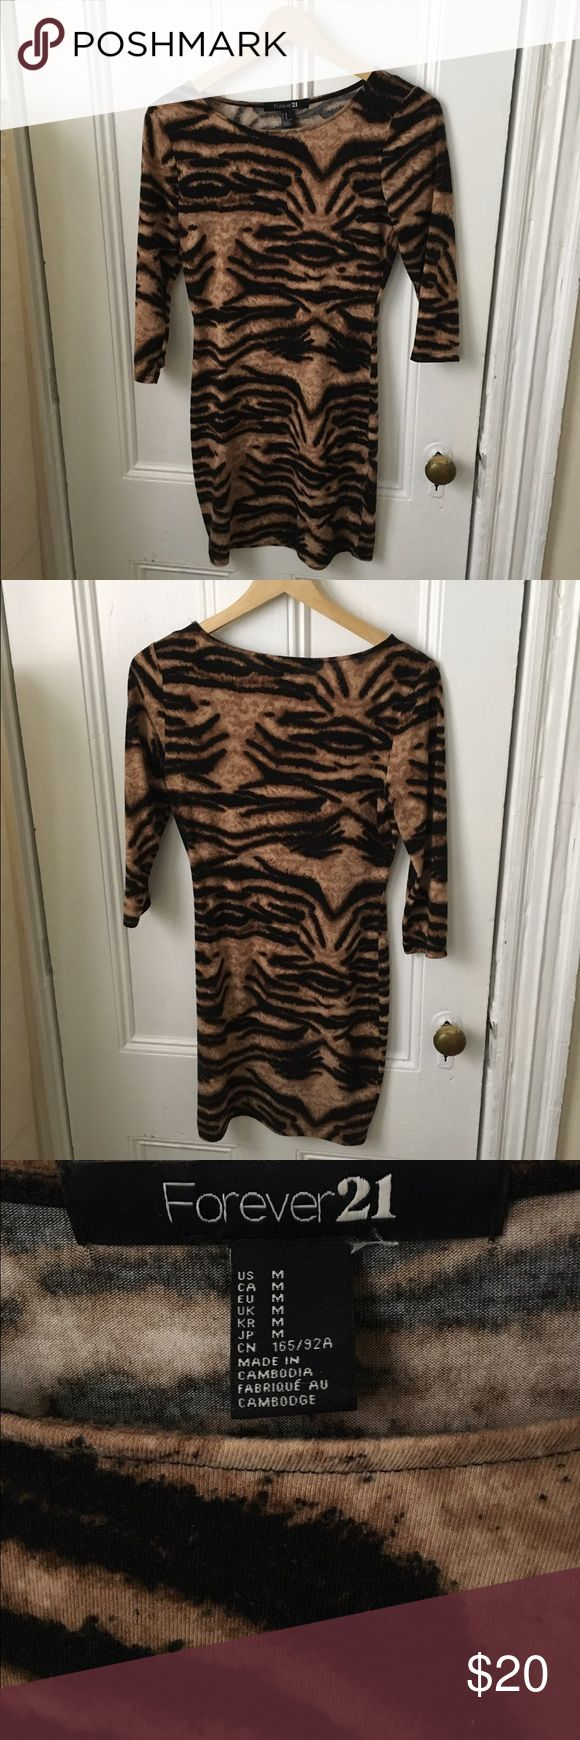 "Tiger Print Dress 3/4 Sleeve Tiger animal print bodycon dress. Tag says medium but I'm a busty small and it looks great on me. 34"" Length 17"" Bust (flat) 14"" Waist (flat). Forever 21 Dresses Long Sleeve"